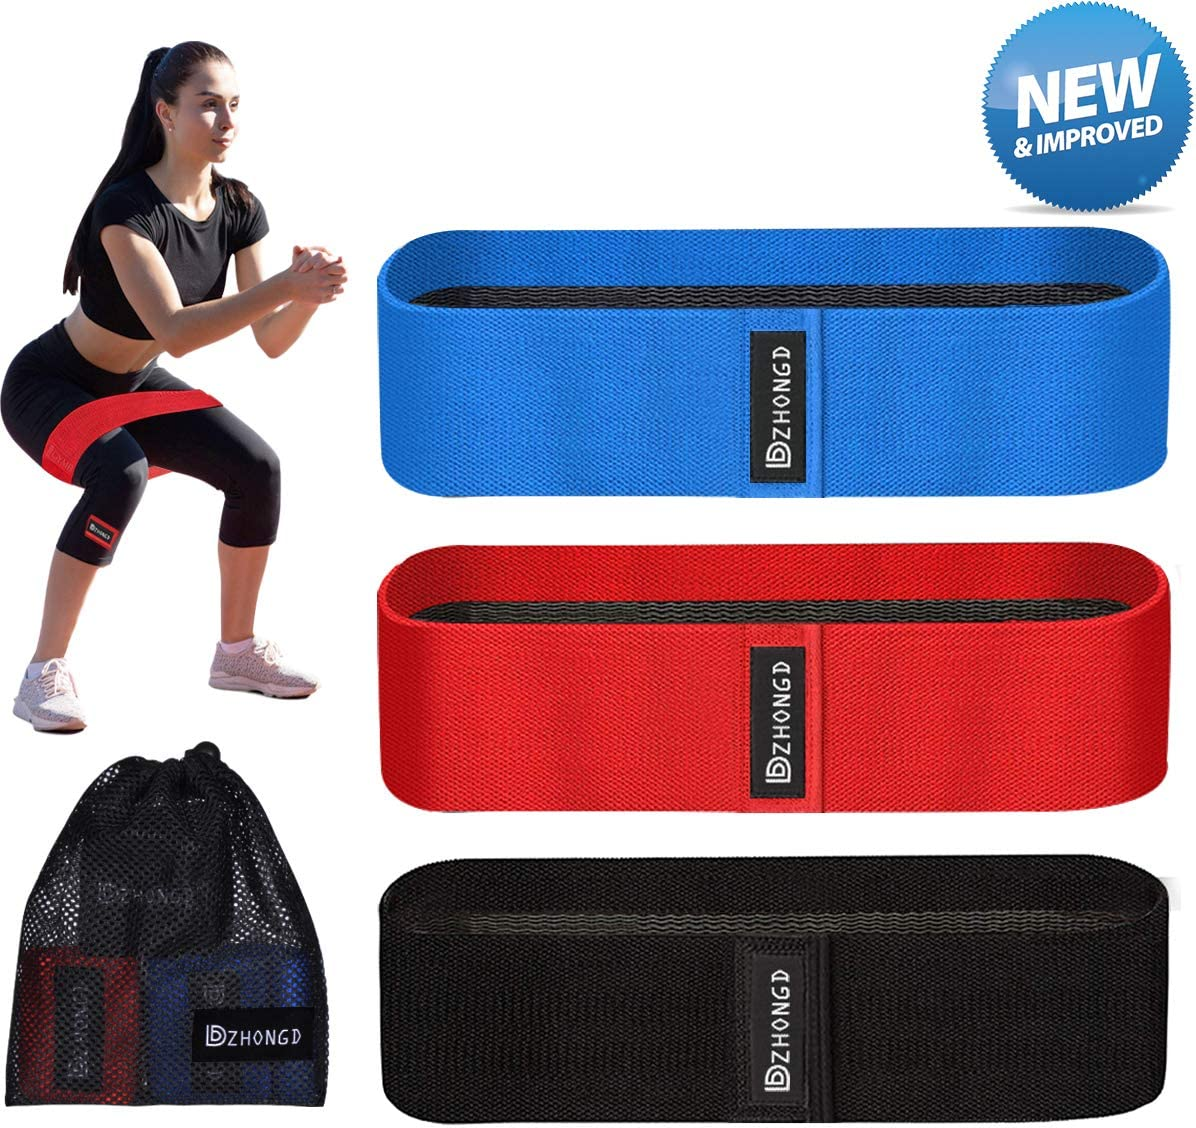 Fabric Non-Slip Non-Rolling Loop Hip Booty Glutes Workout Exercise Bands DZHONGD Resistance Bands for Legs Butt